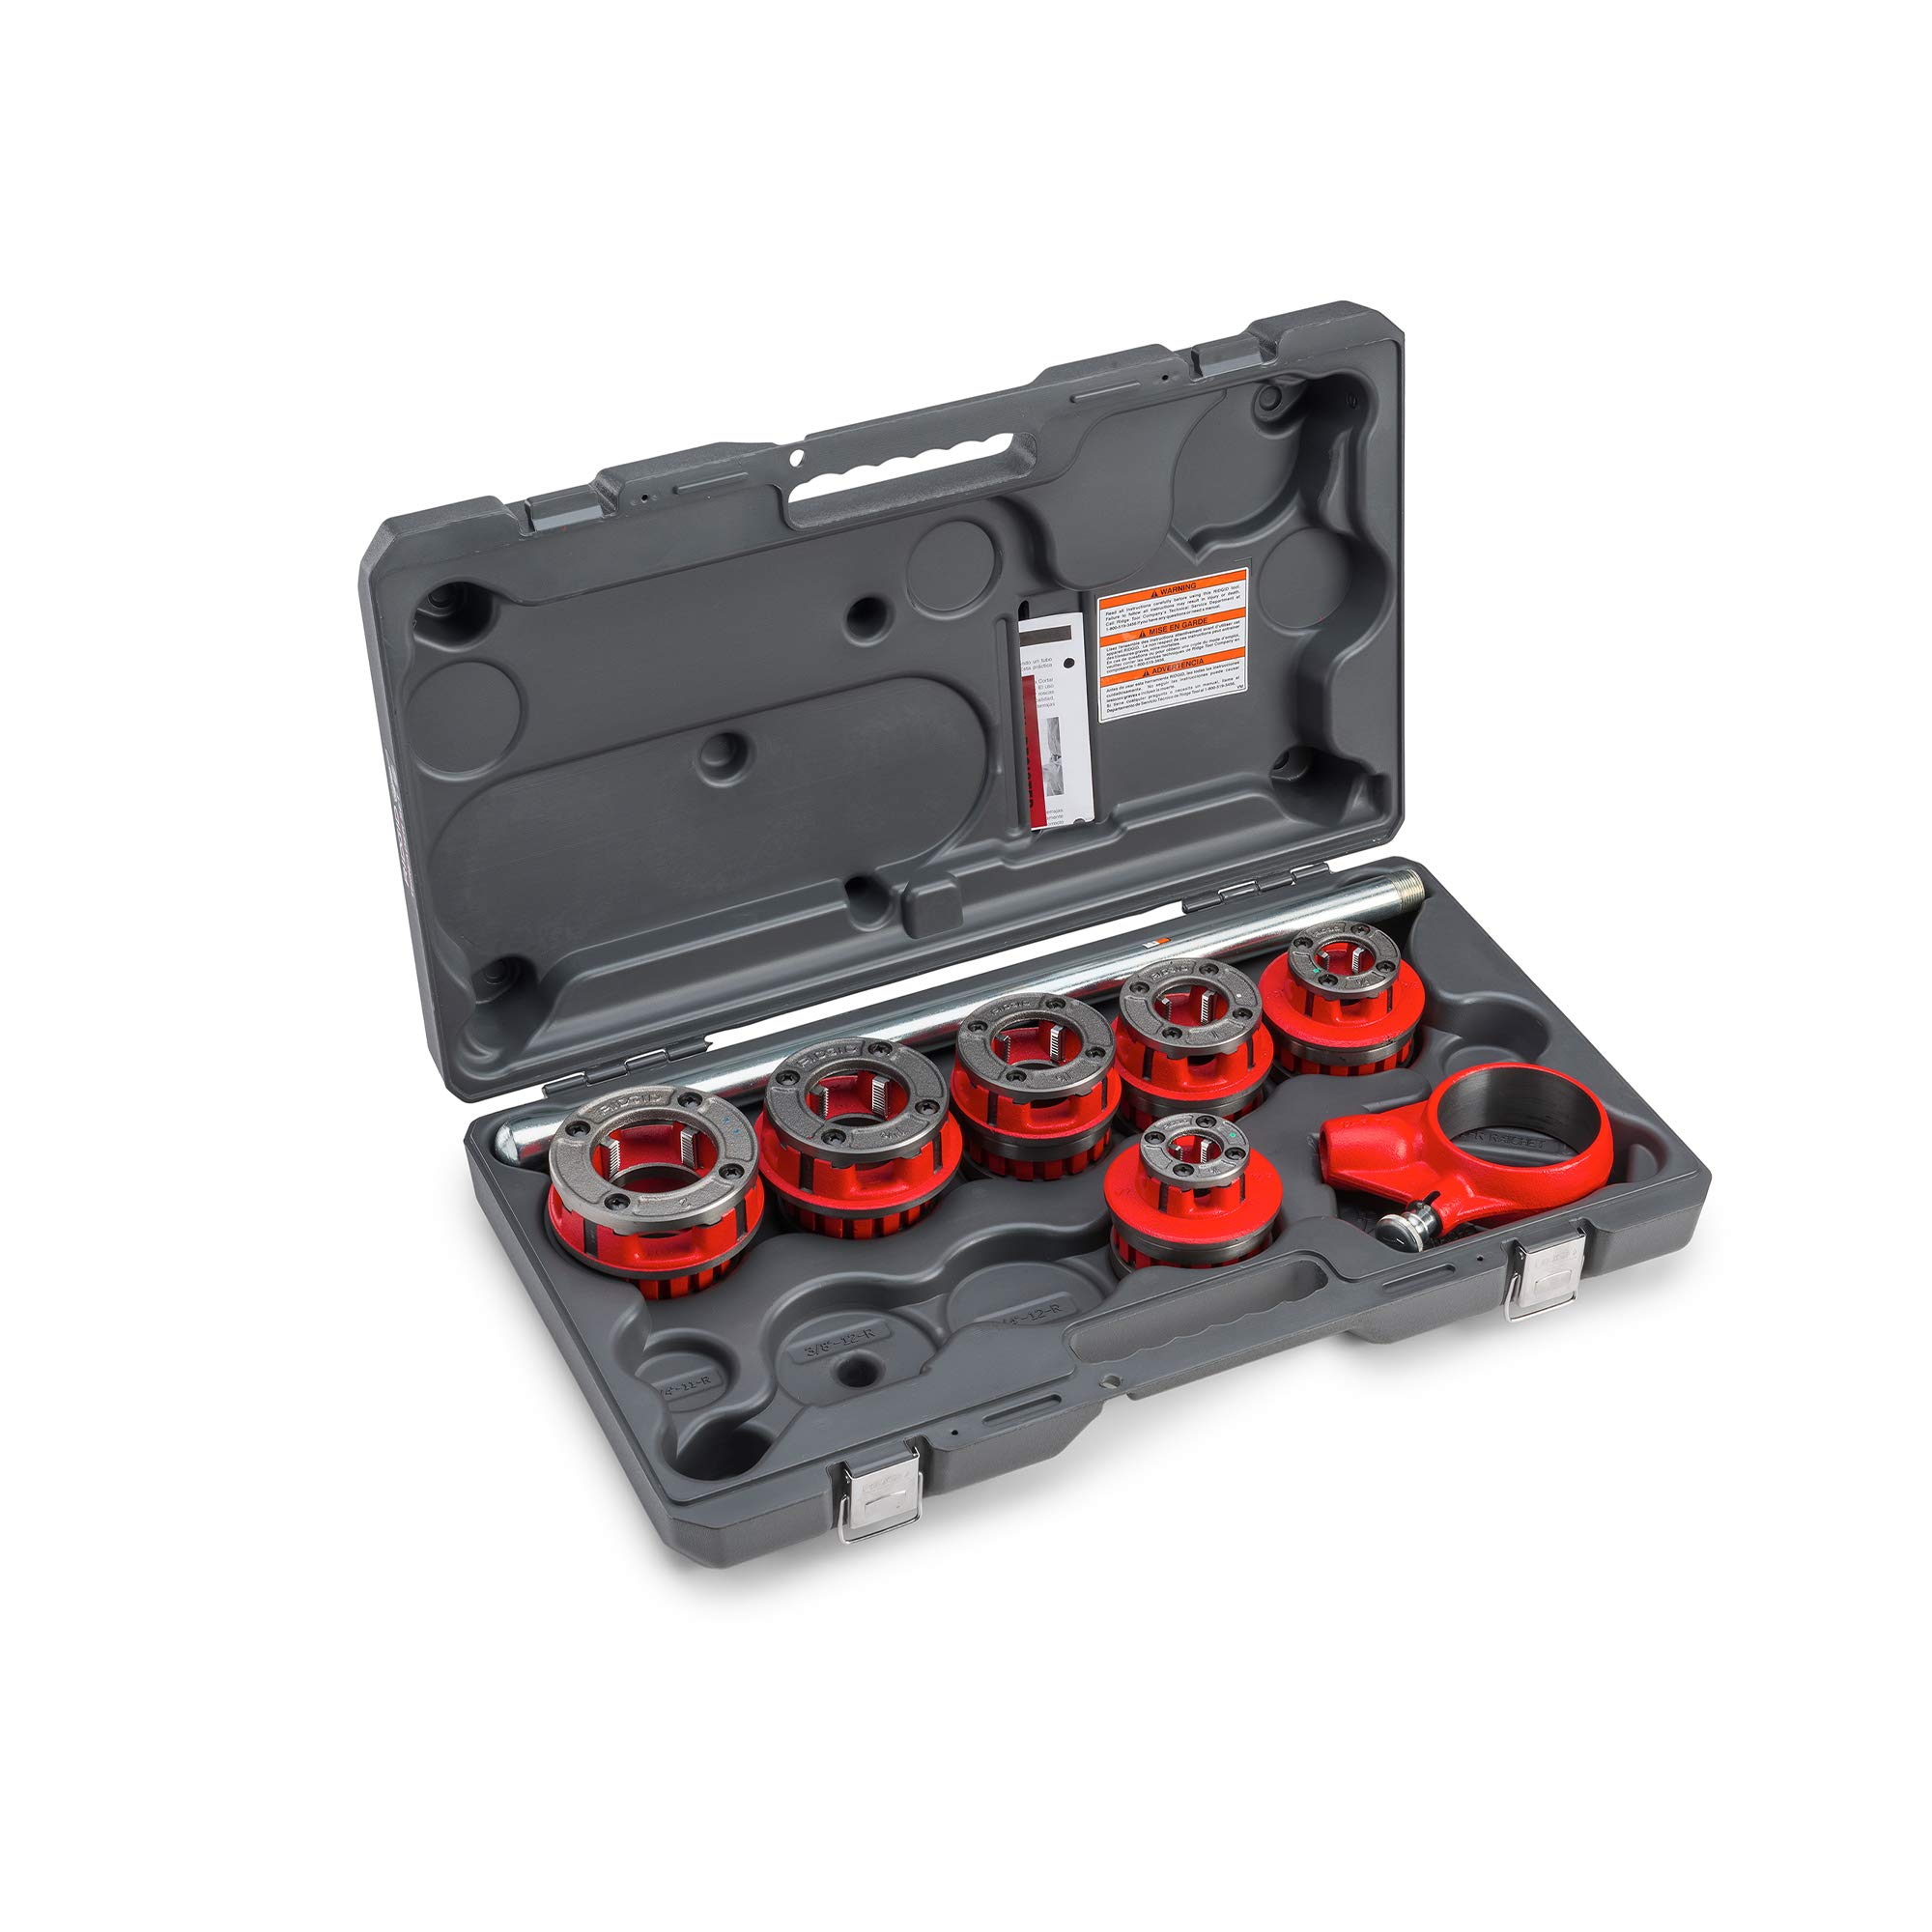 RIDGID 36475 Exposed Ratchet Threader Set, Model 12-R Ratcheting Pipe Threading Set of 1/2-Inch to 2-Inch NPT Pipe Threading Dies and Manual Ratcheting Pipe Threader with Carrying Case by Ridgid (Image #2)